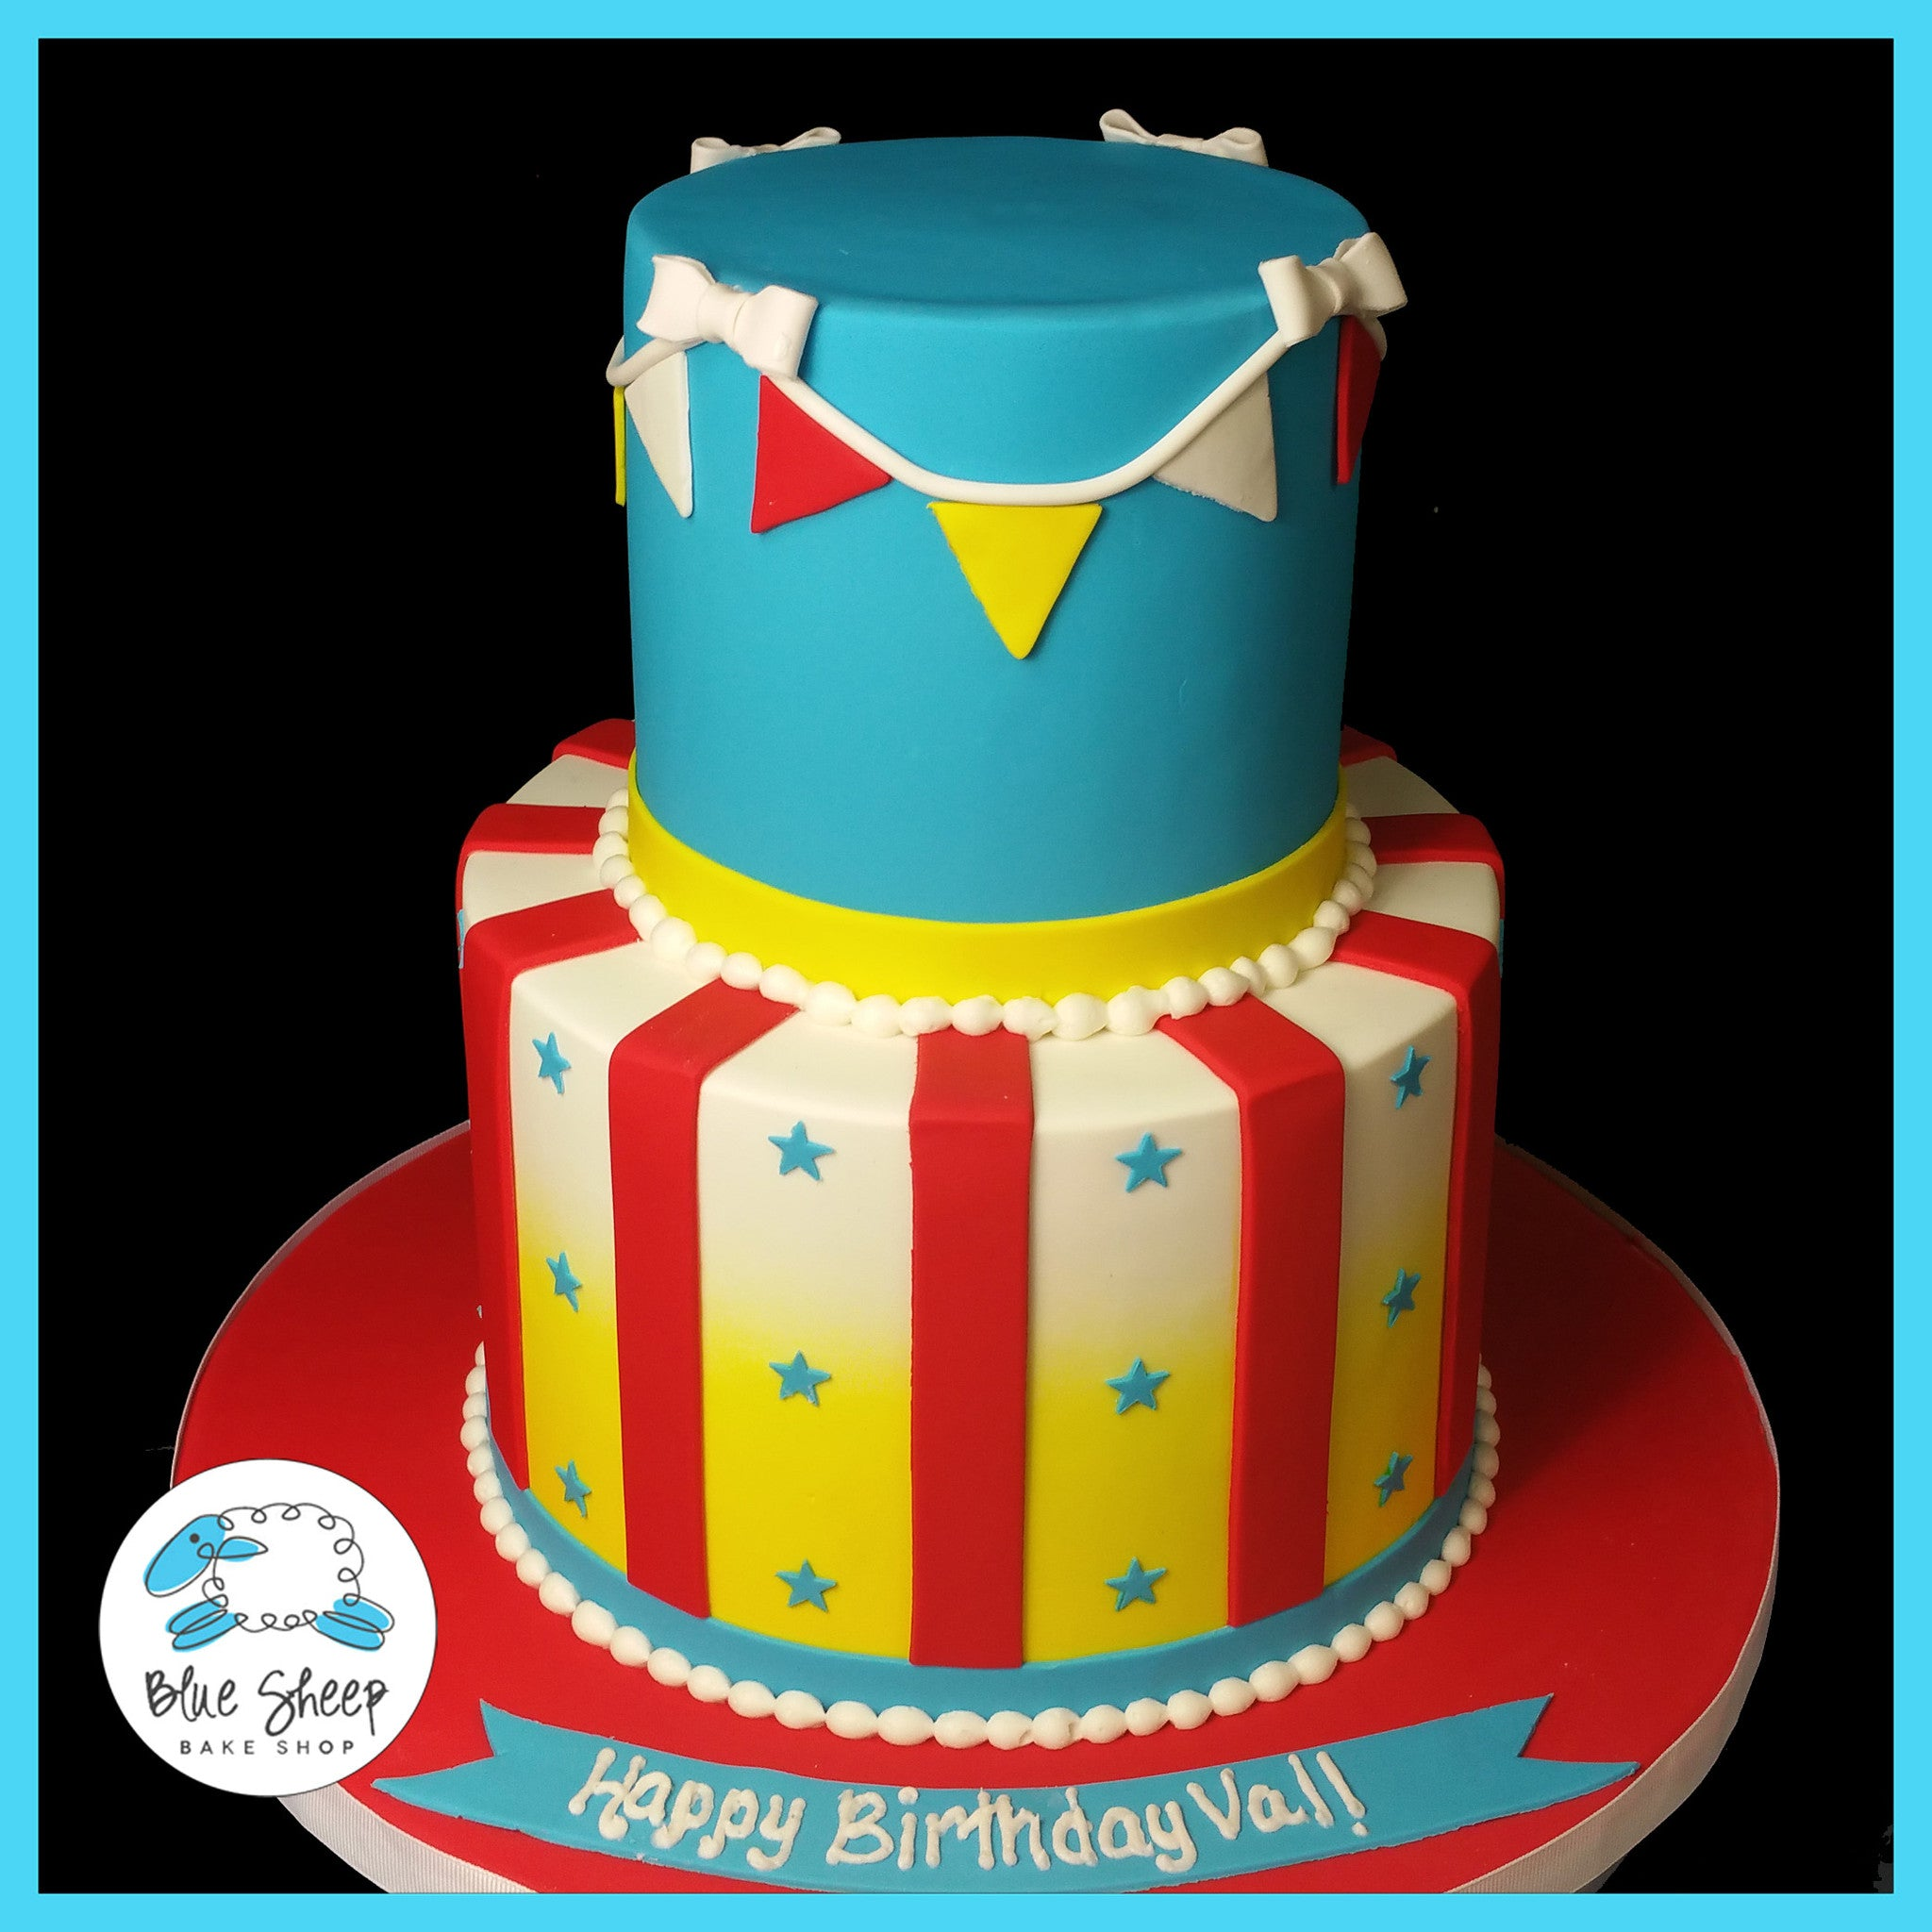 Cool Vals Circus Birthday Cake Blue Sheep Bake Shop Personalised Birthday Cards Veneteletsinfo